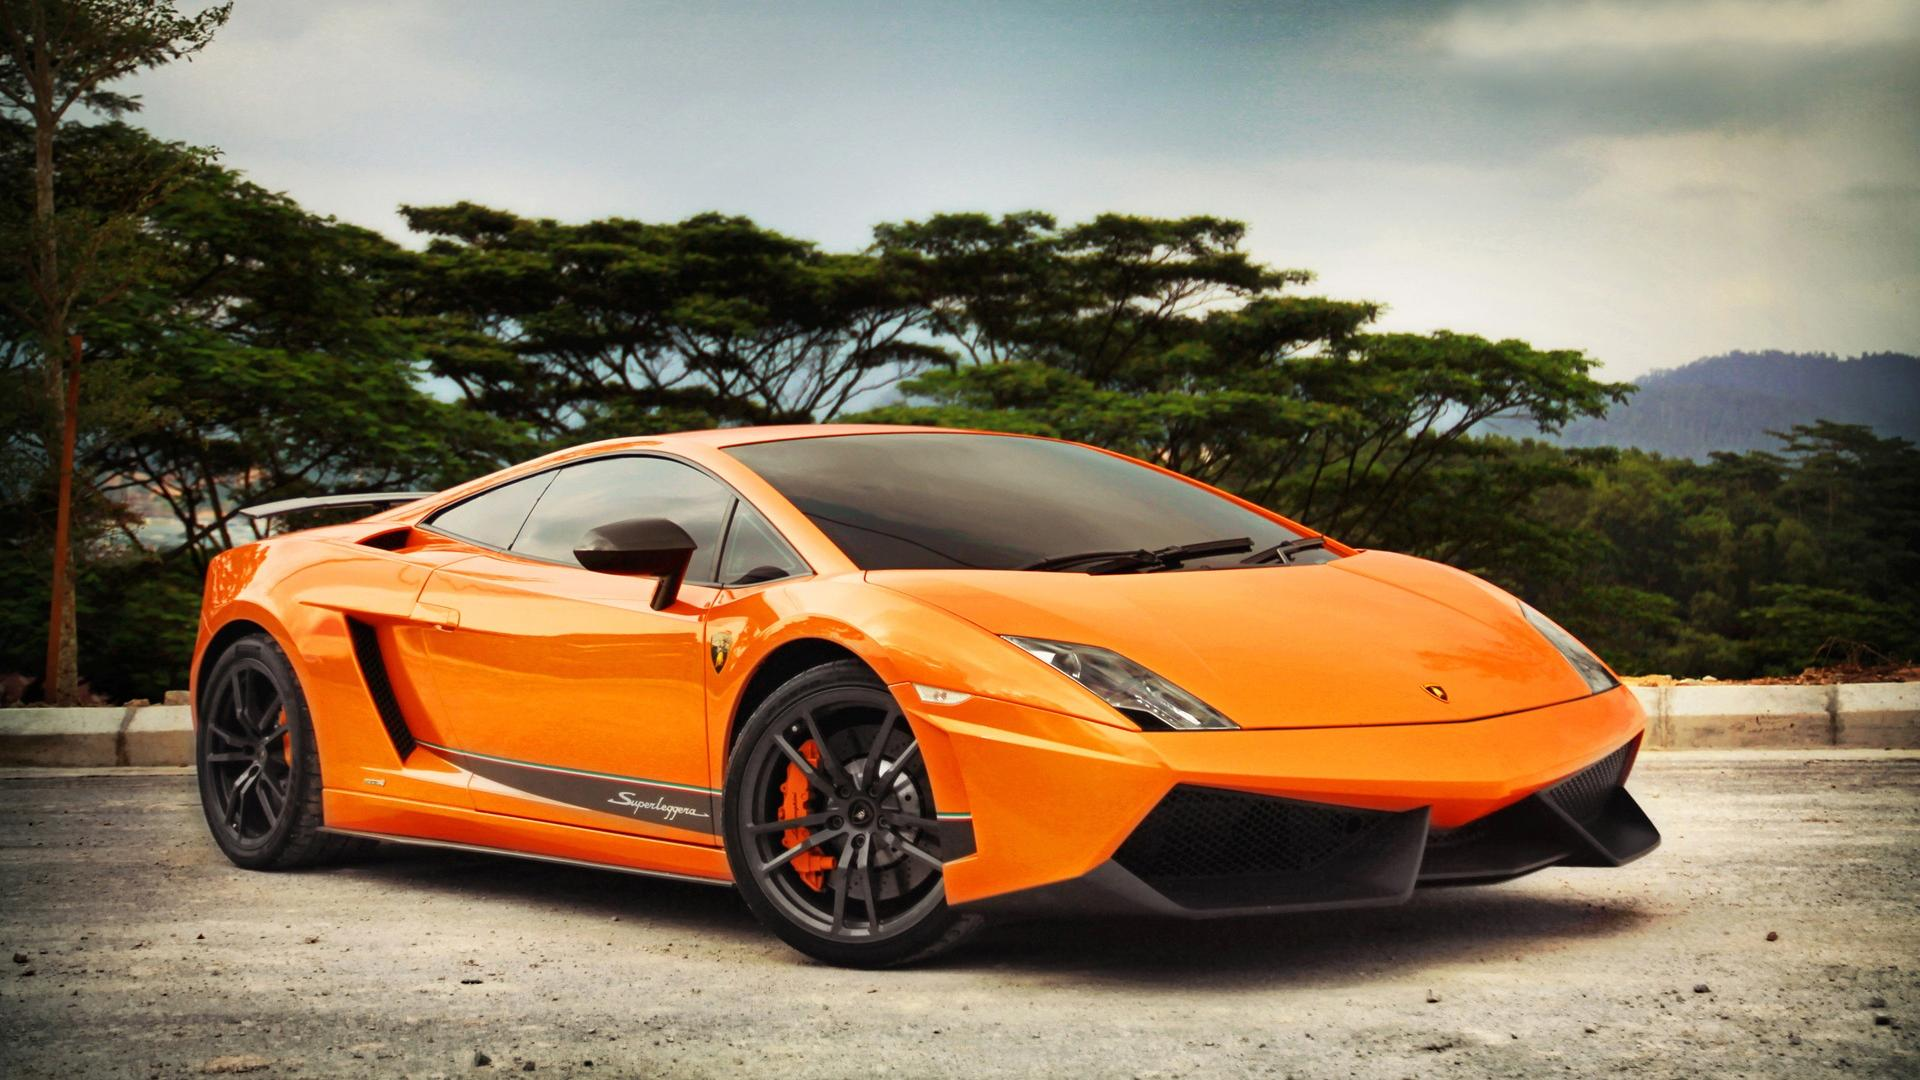 Gallardo Sports Cars HD Wallpaper of Car   hdwallpaper2013com 1920x1080